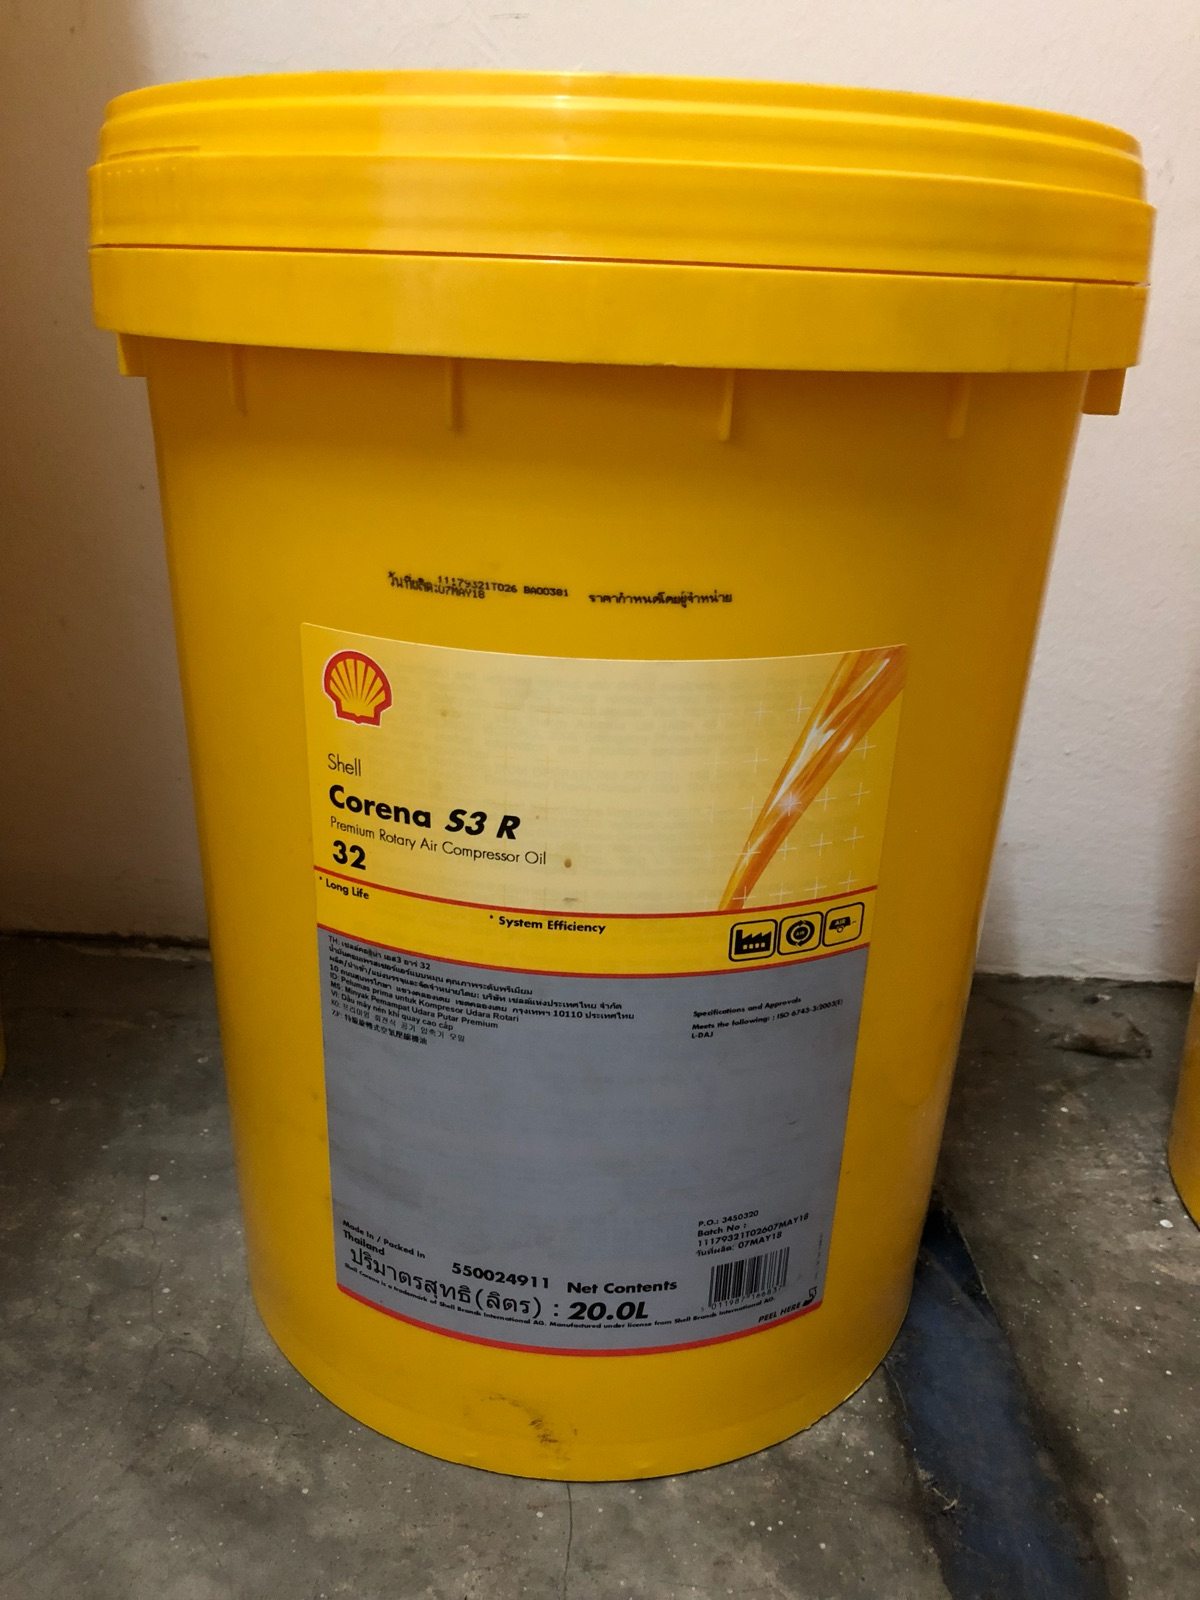 Shell Compressor Oil S3 R 32